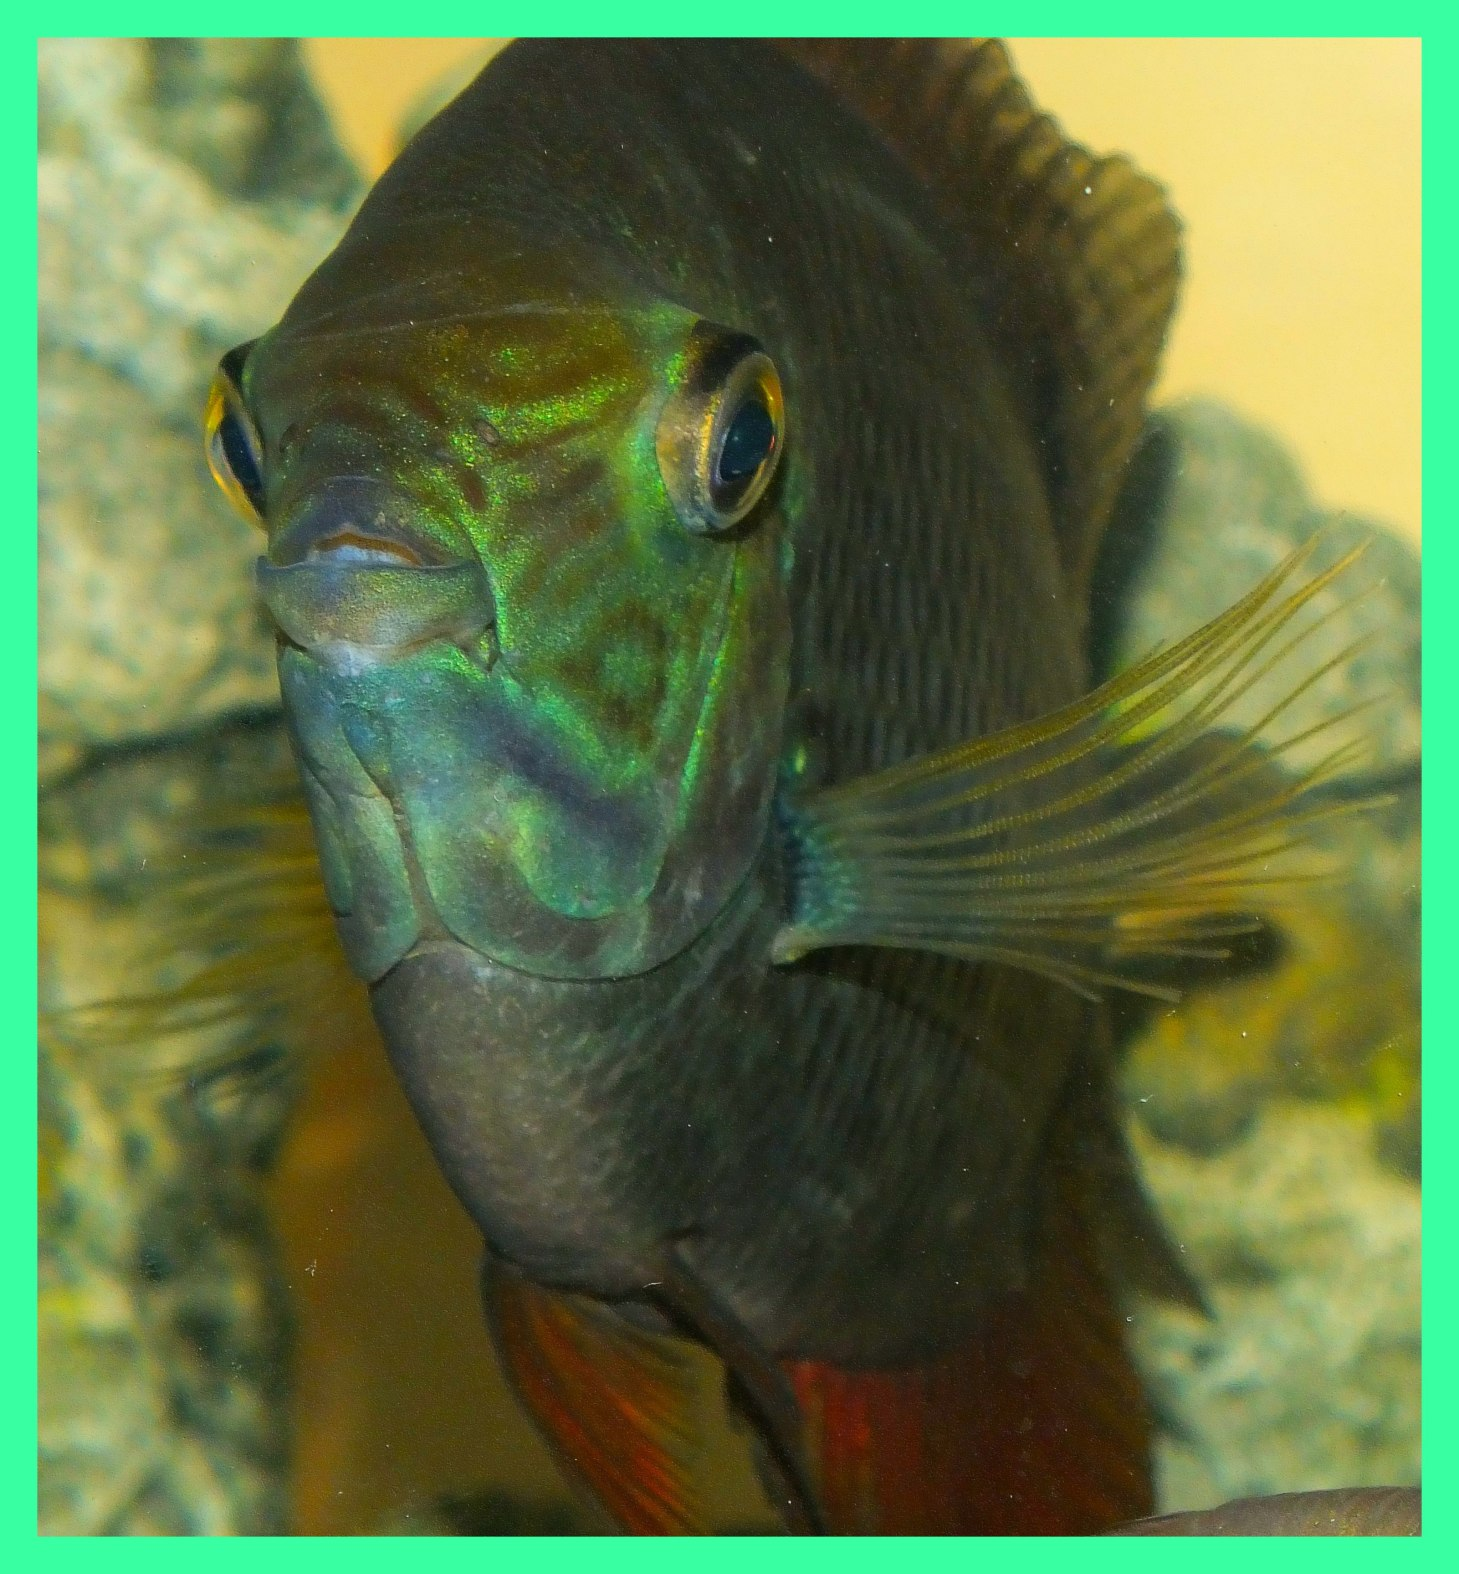 Turquoise Severum. (1)  Photo by Thomas Peace c. 2015